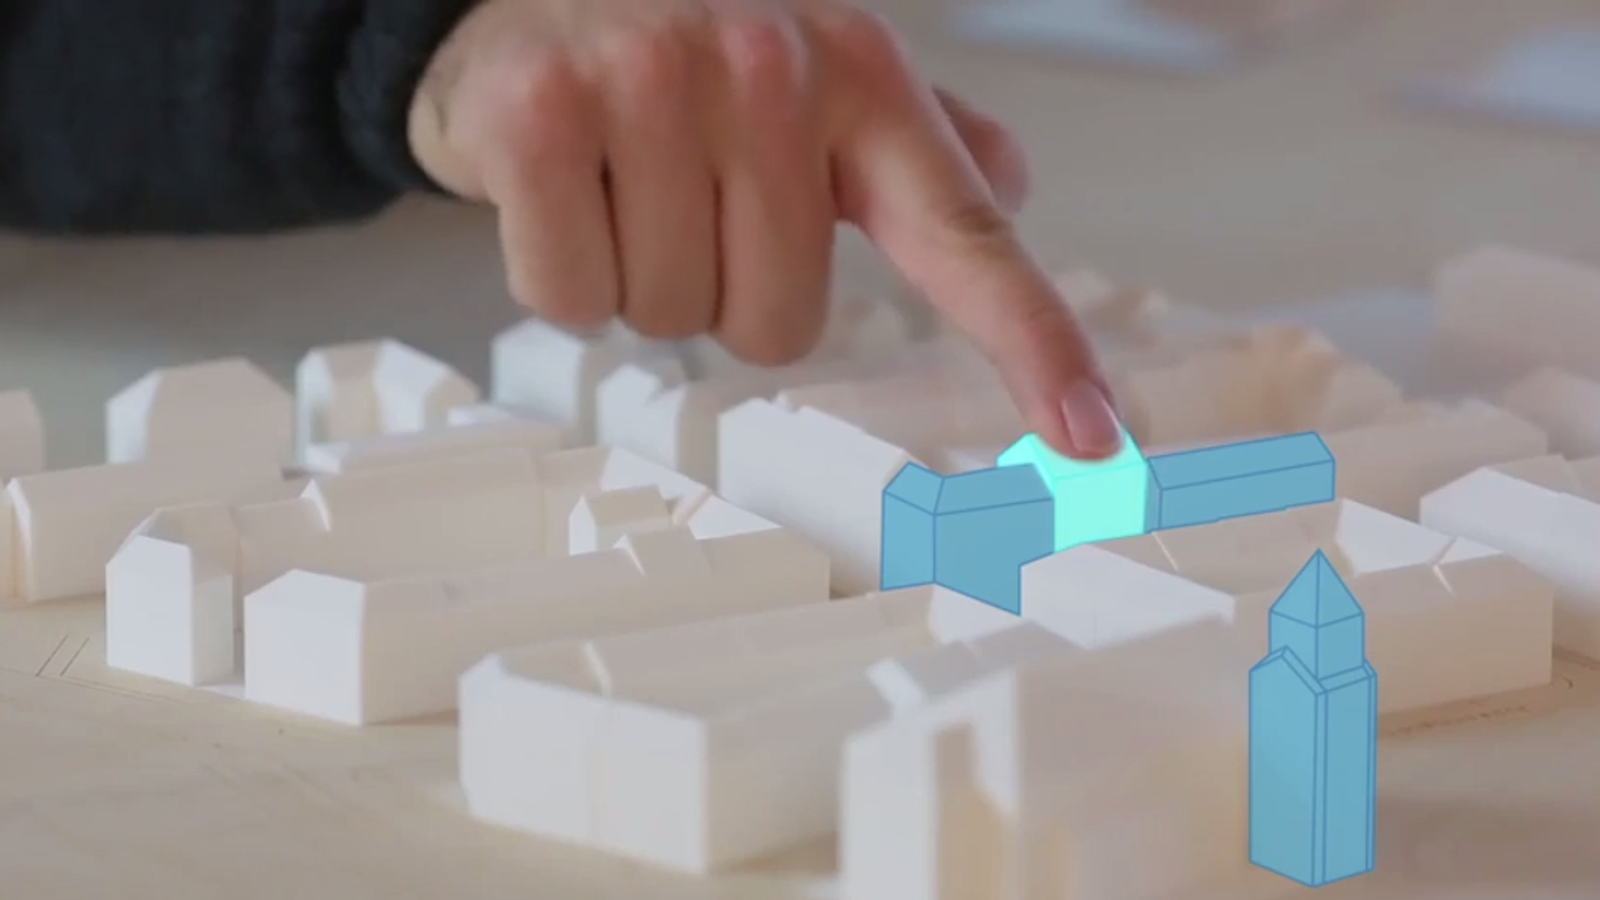 New Thermal Technology Turns the Entire World into a Touchscreen